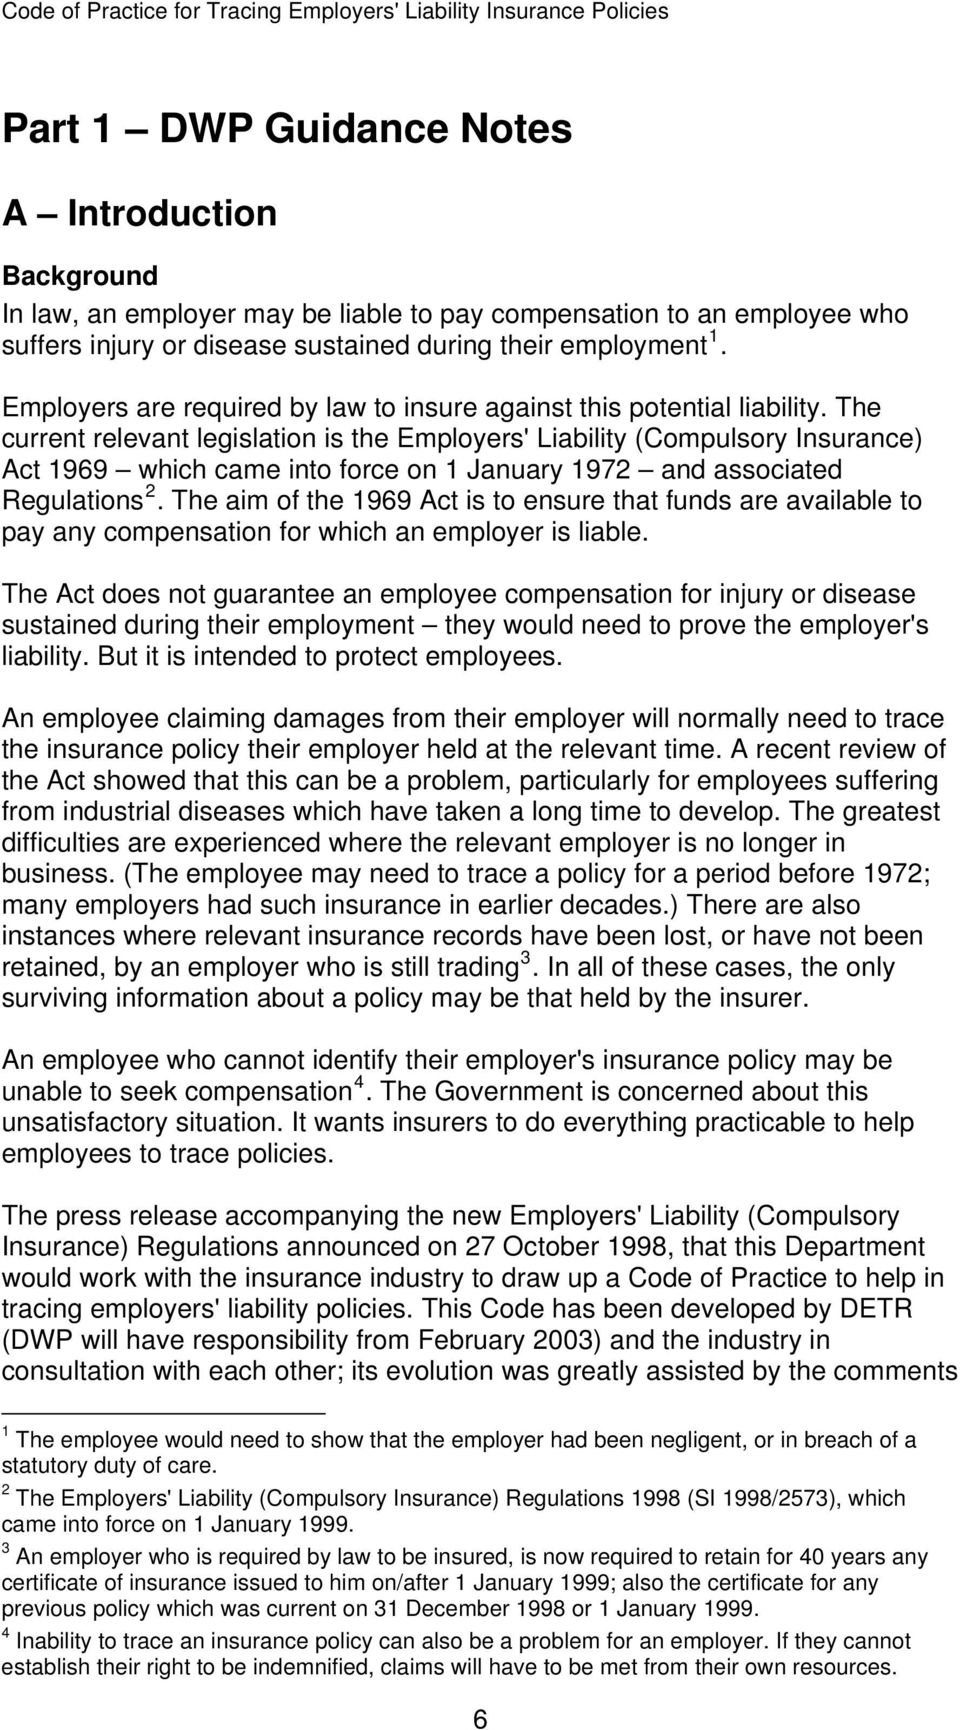 The current relevant legislation is the Employers' Liability (Compulsory Insurance) Act 1969 which came into force on 1 January 1972 and associated Regulations 2.